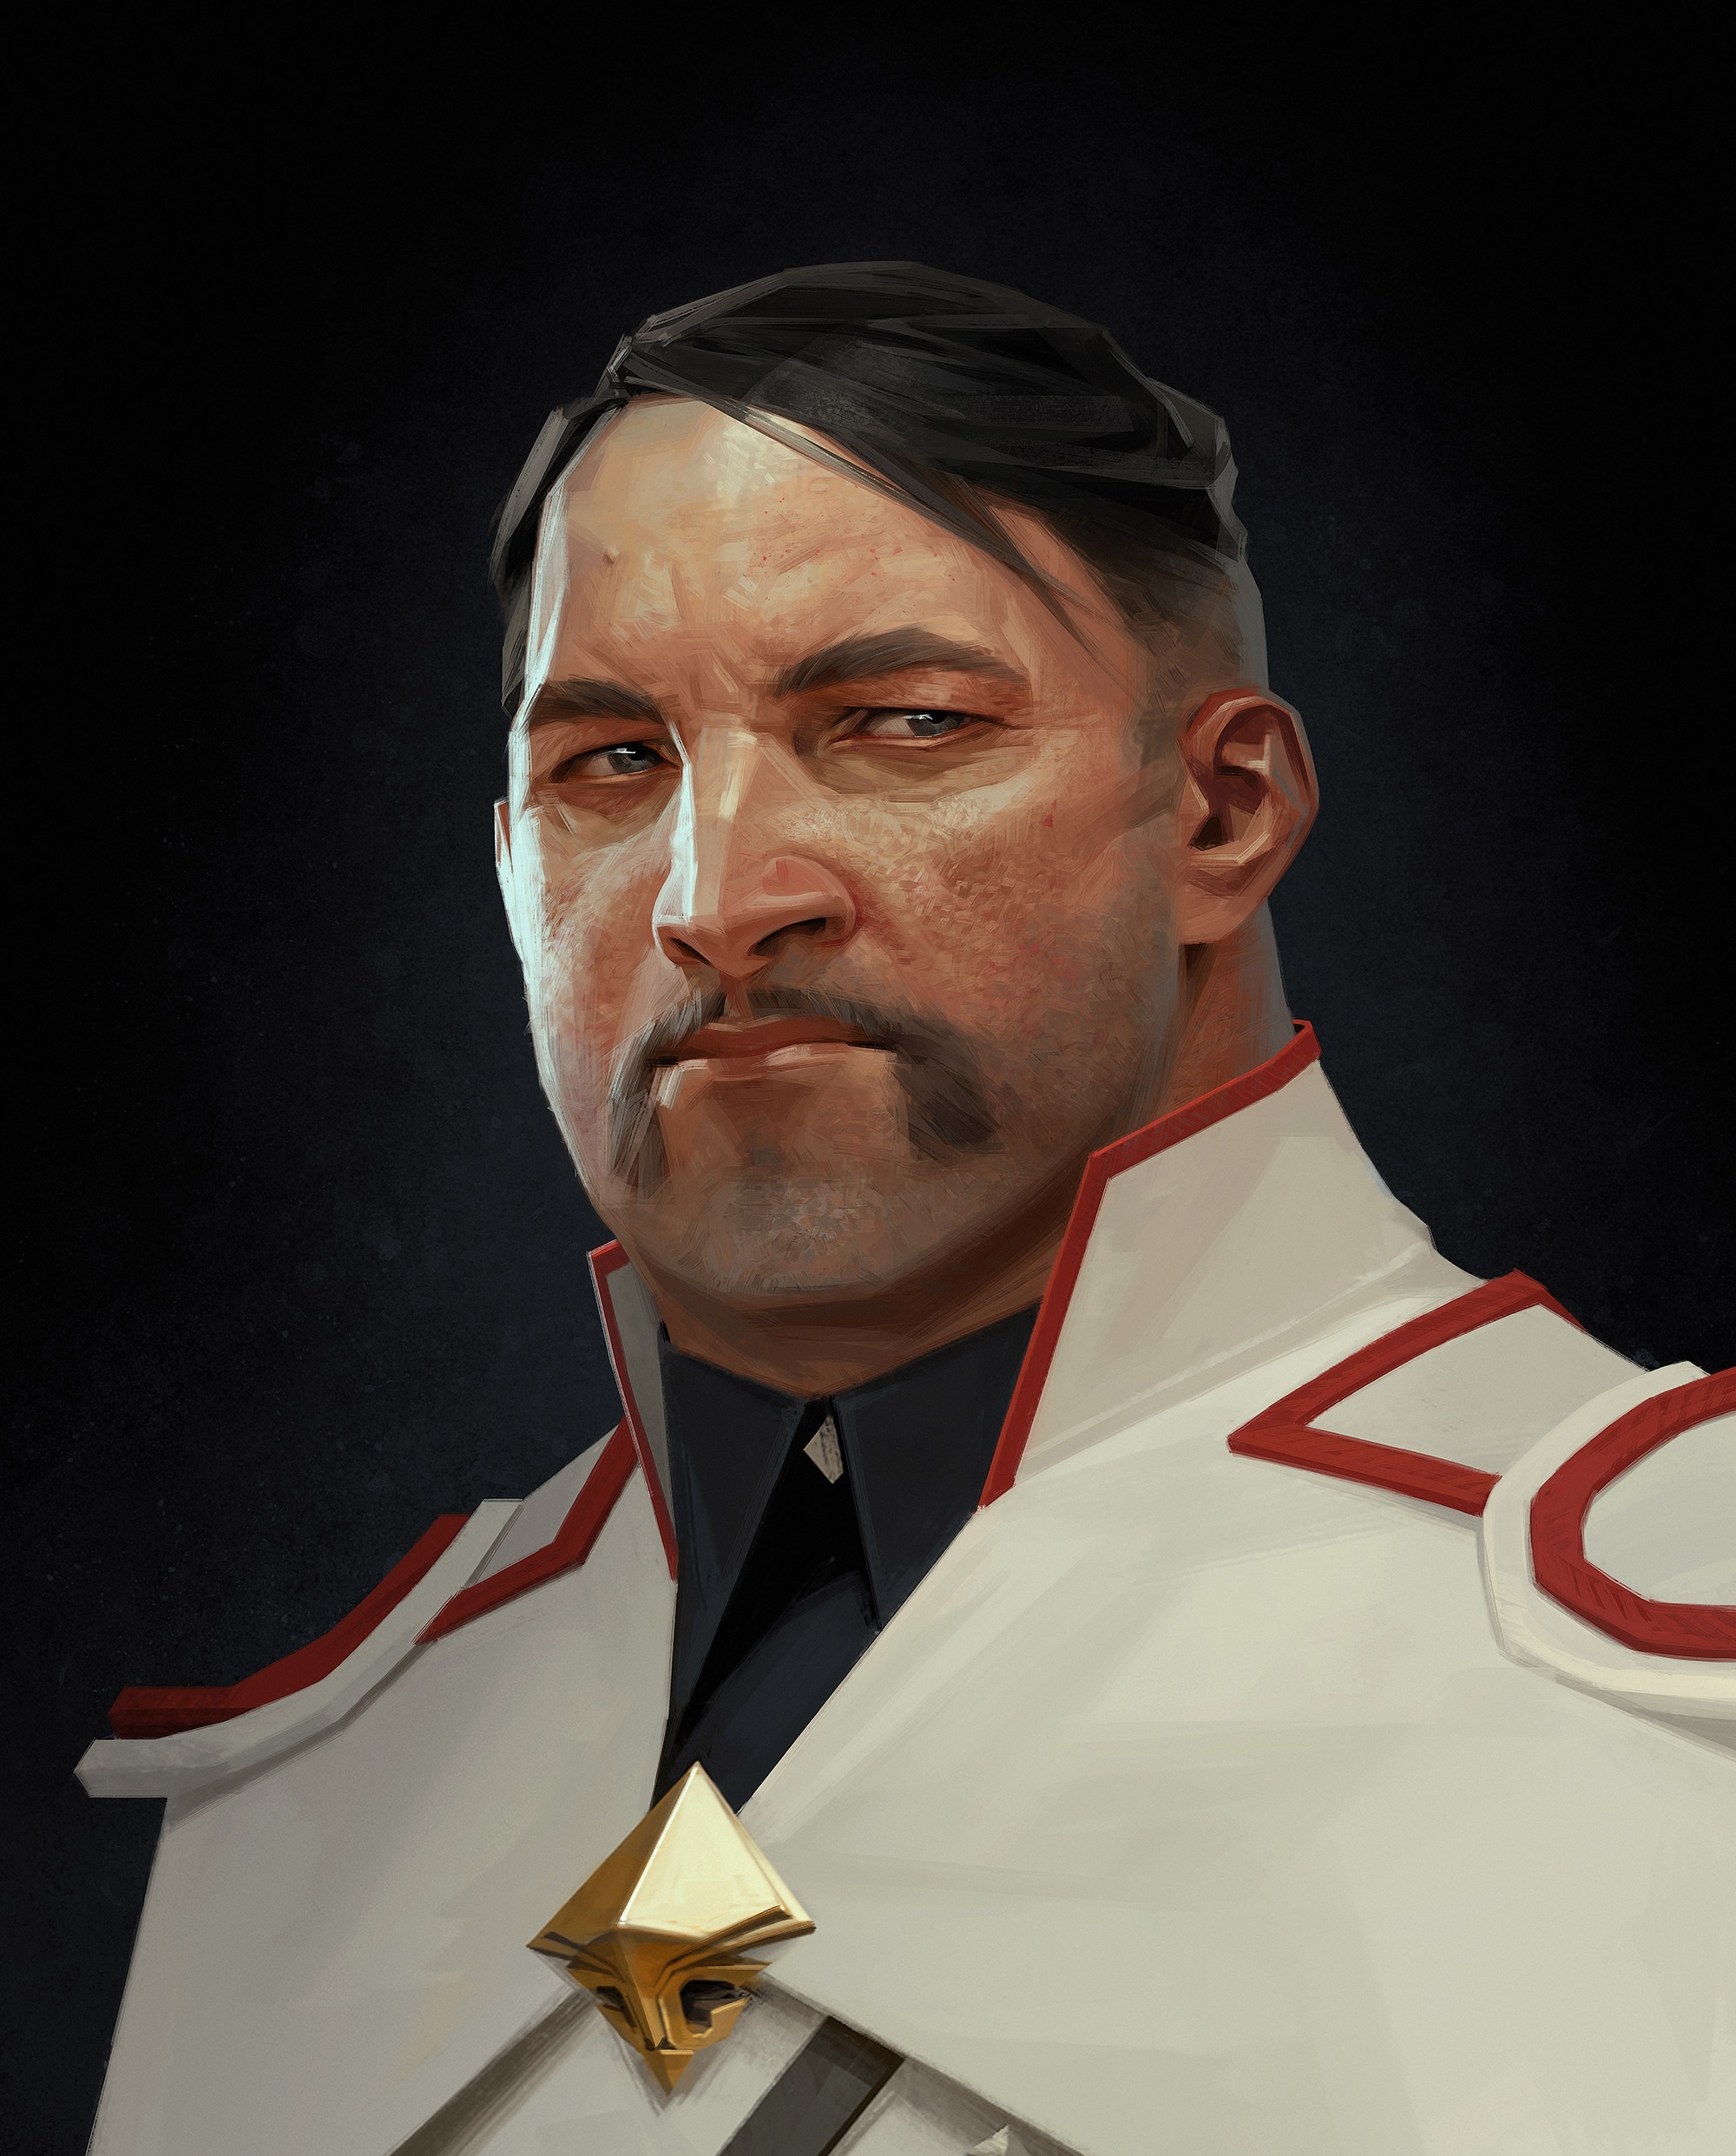 dishonored 2 character art